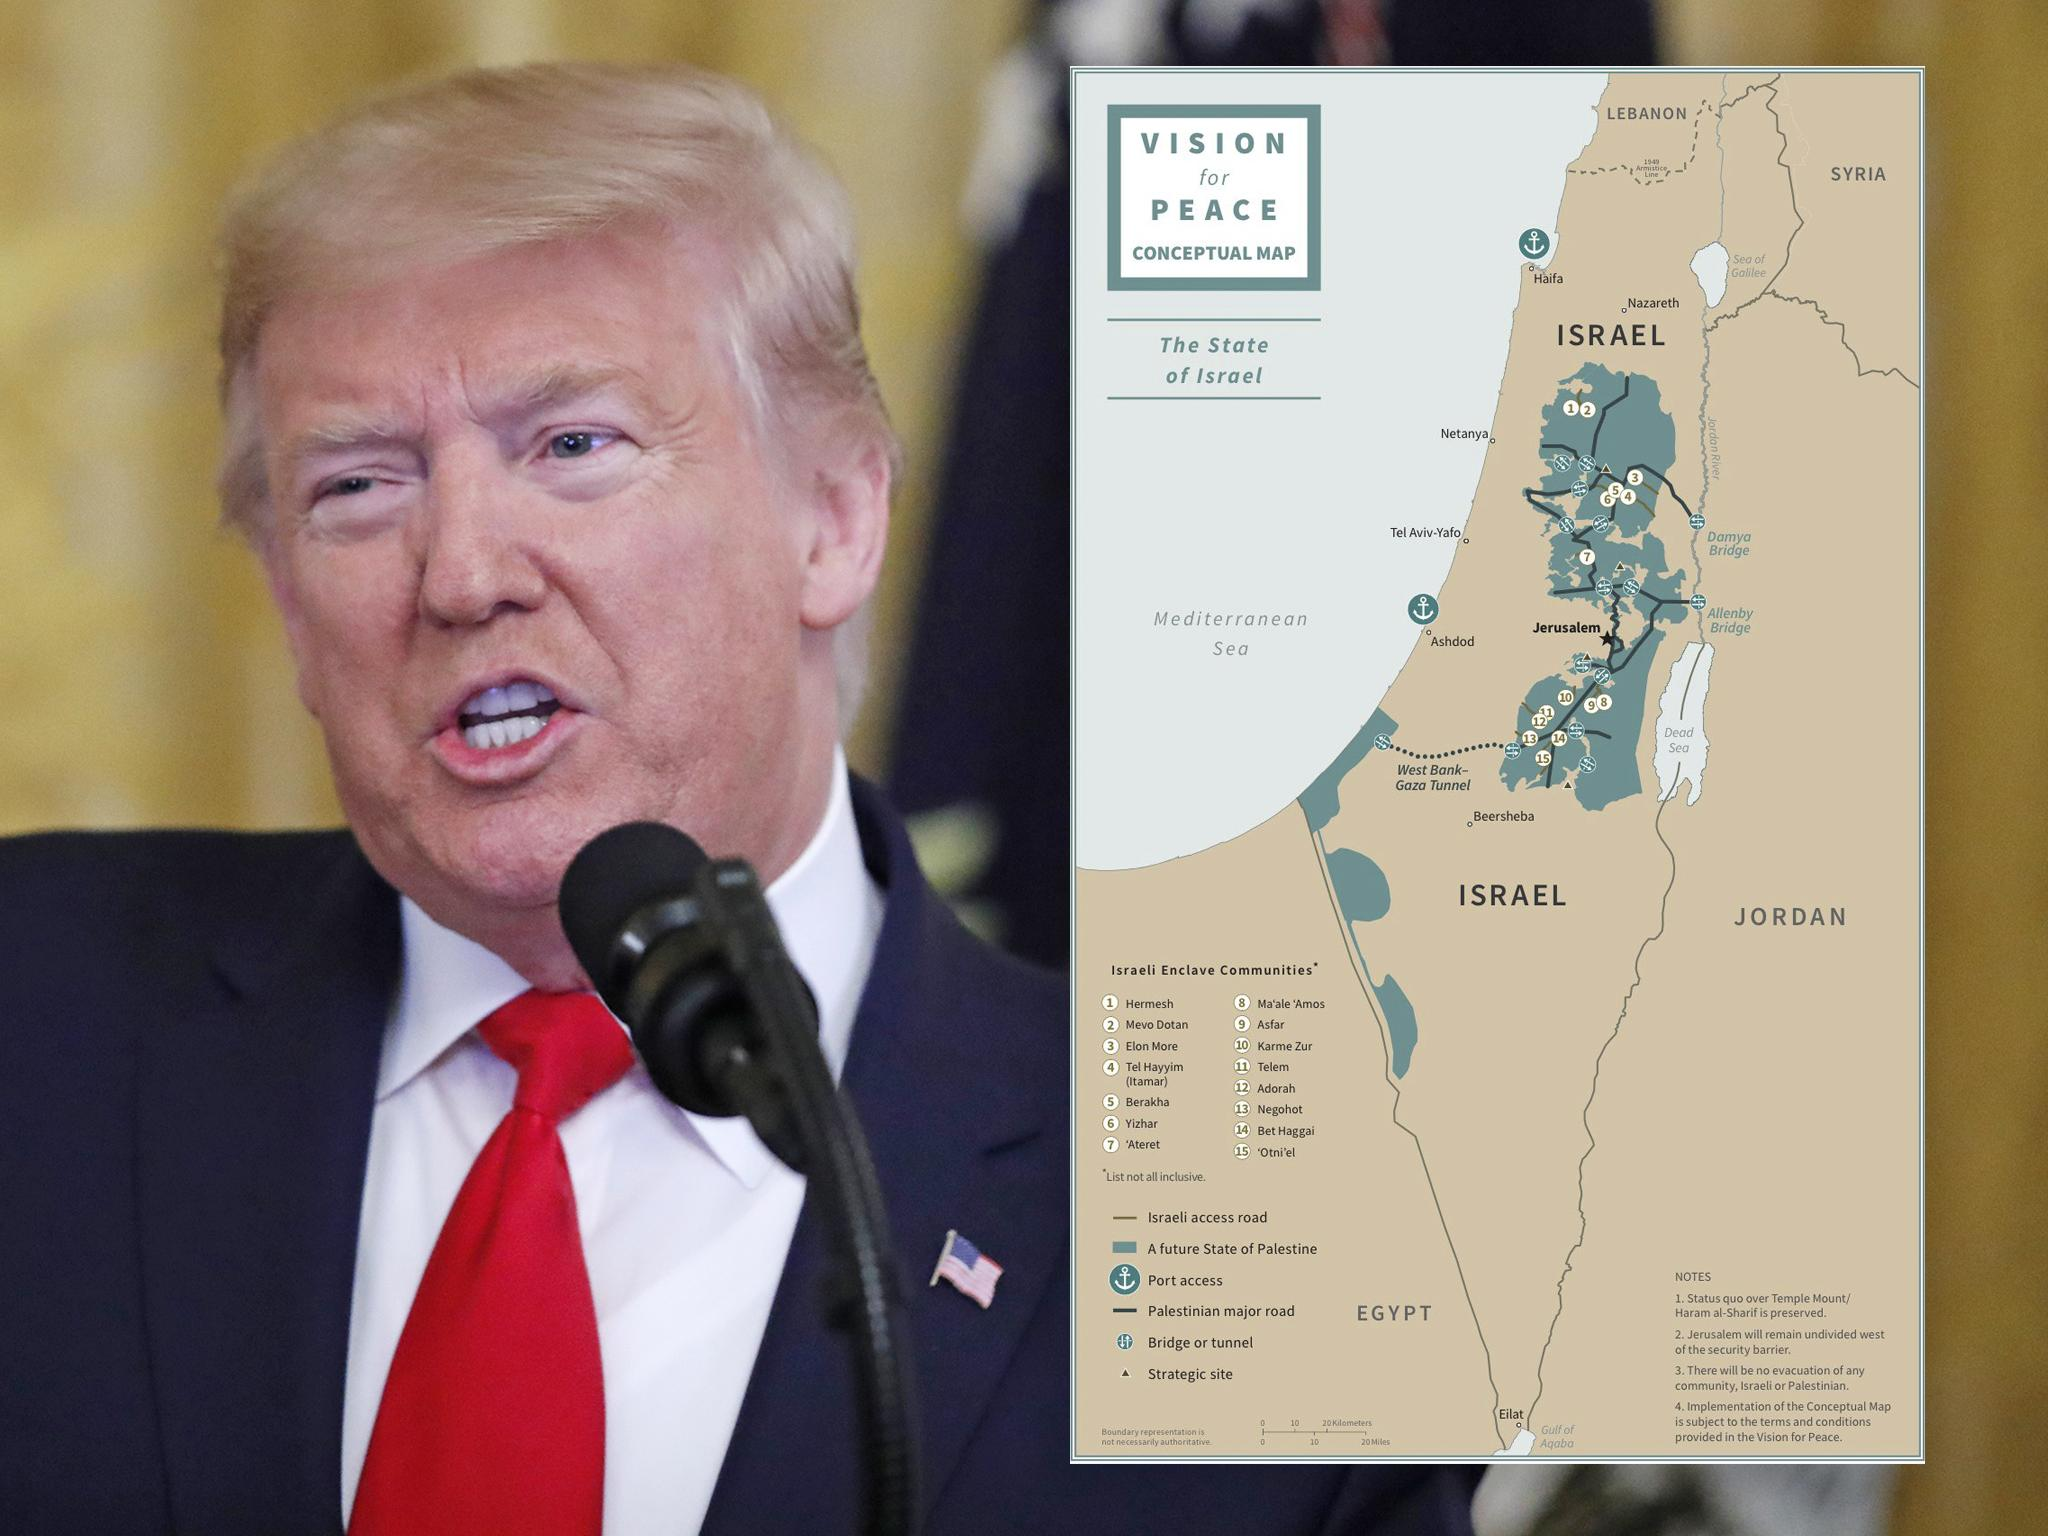 trump peace conceptual map comp - Deal of the century or 'path to apartheid'? Inside Trump's divisive peace plan